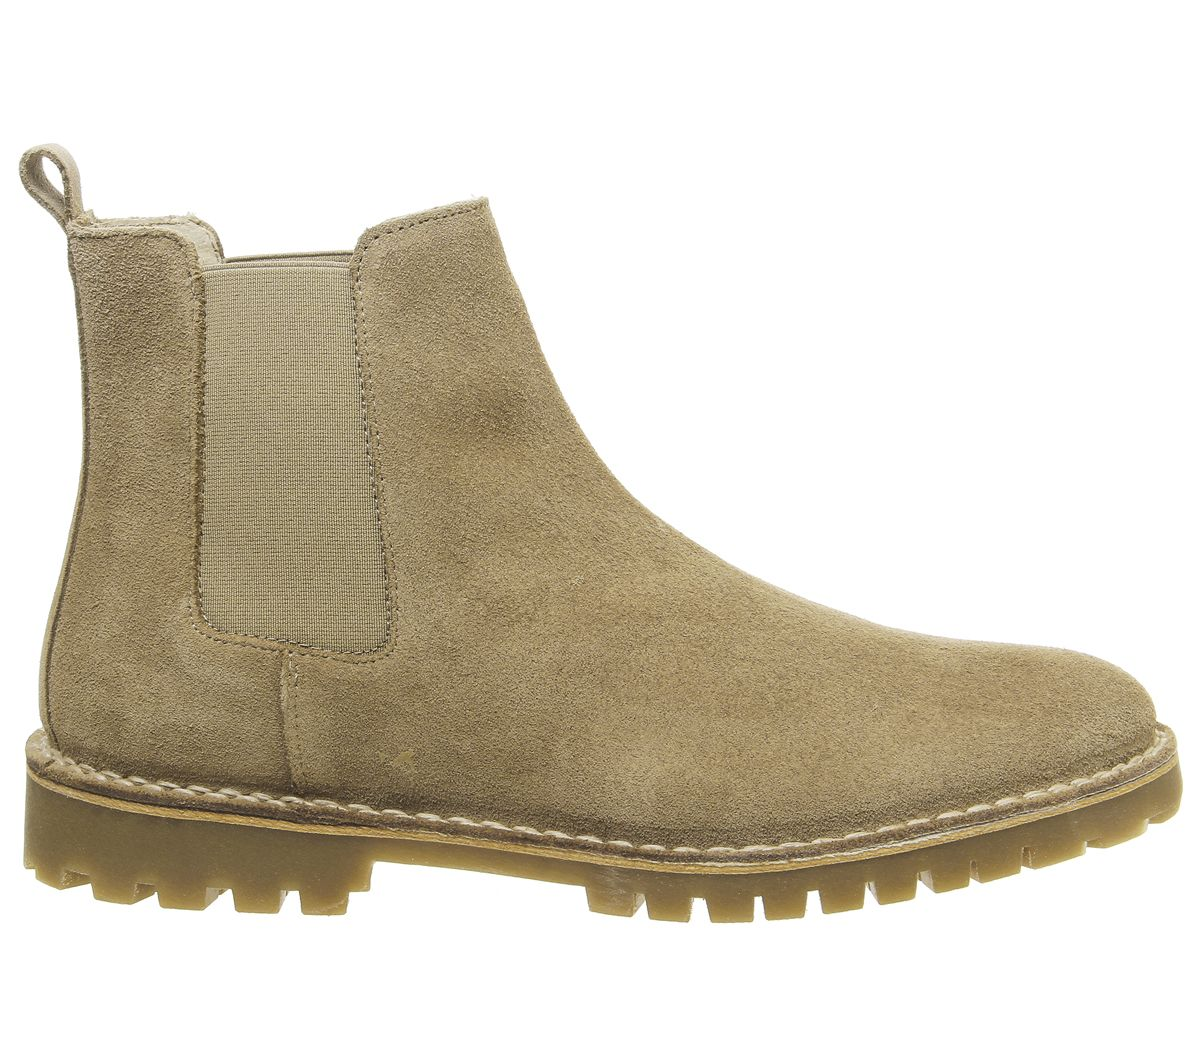 Mens-Office-Impala-Chelsea-Boots-Beige-Suede-Boots thumbnail 4